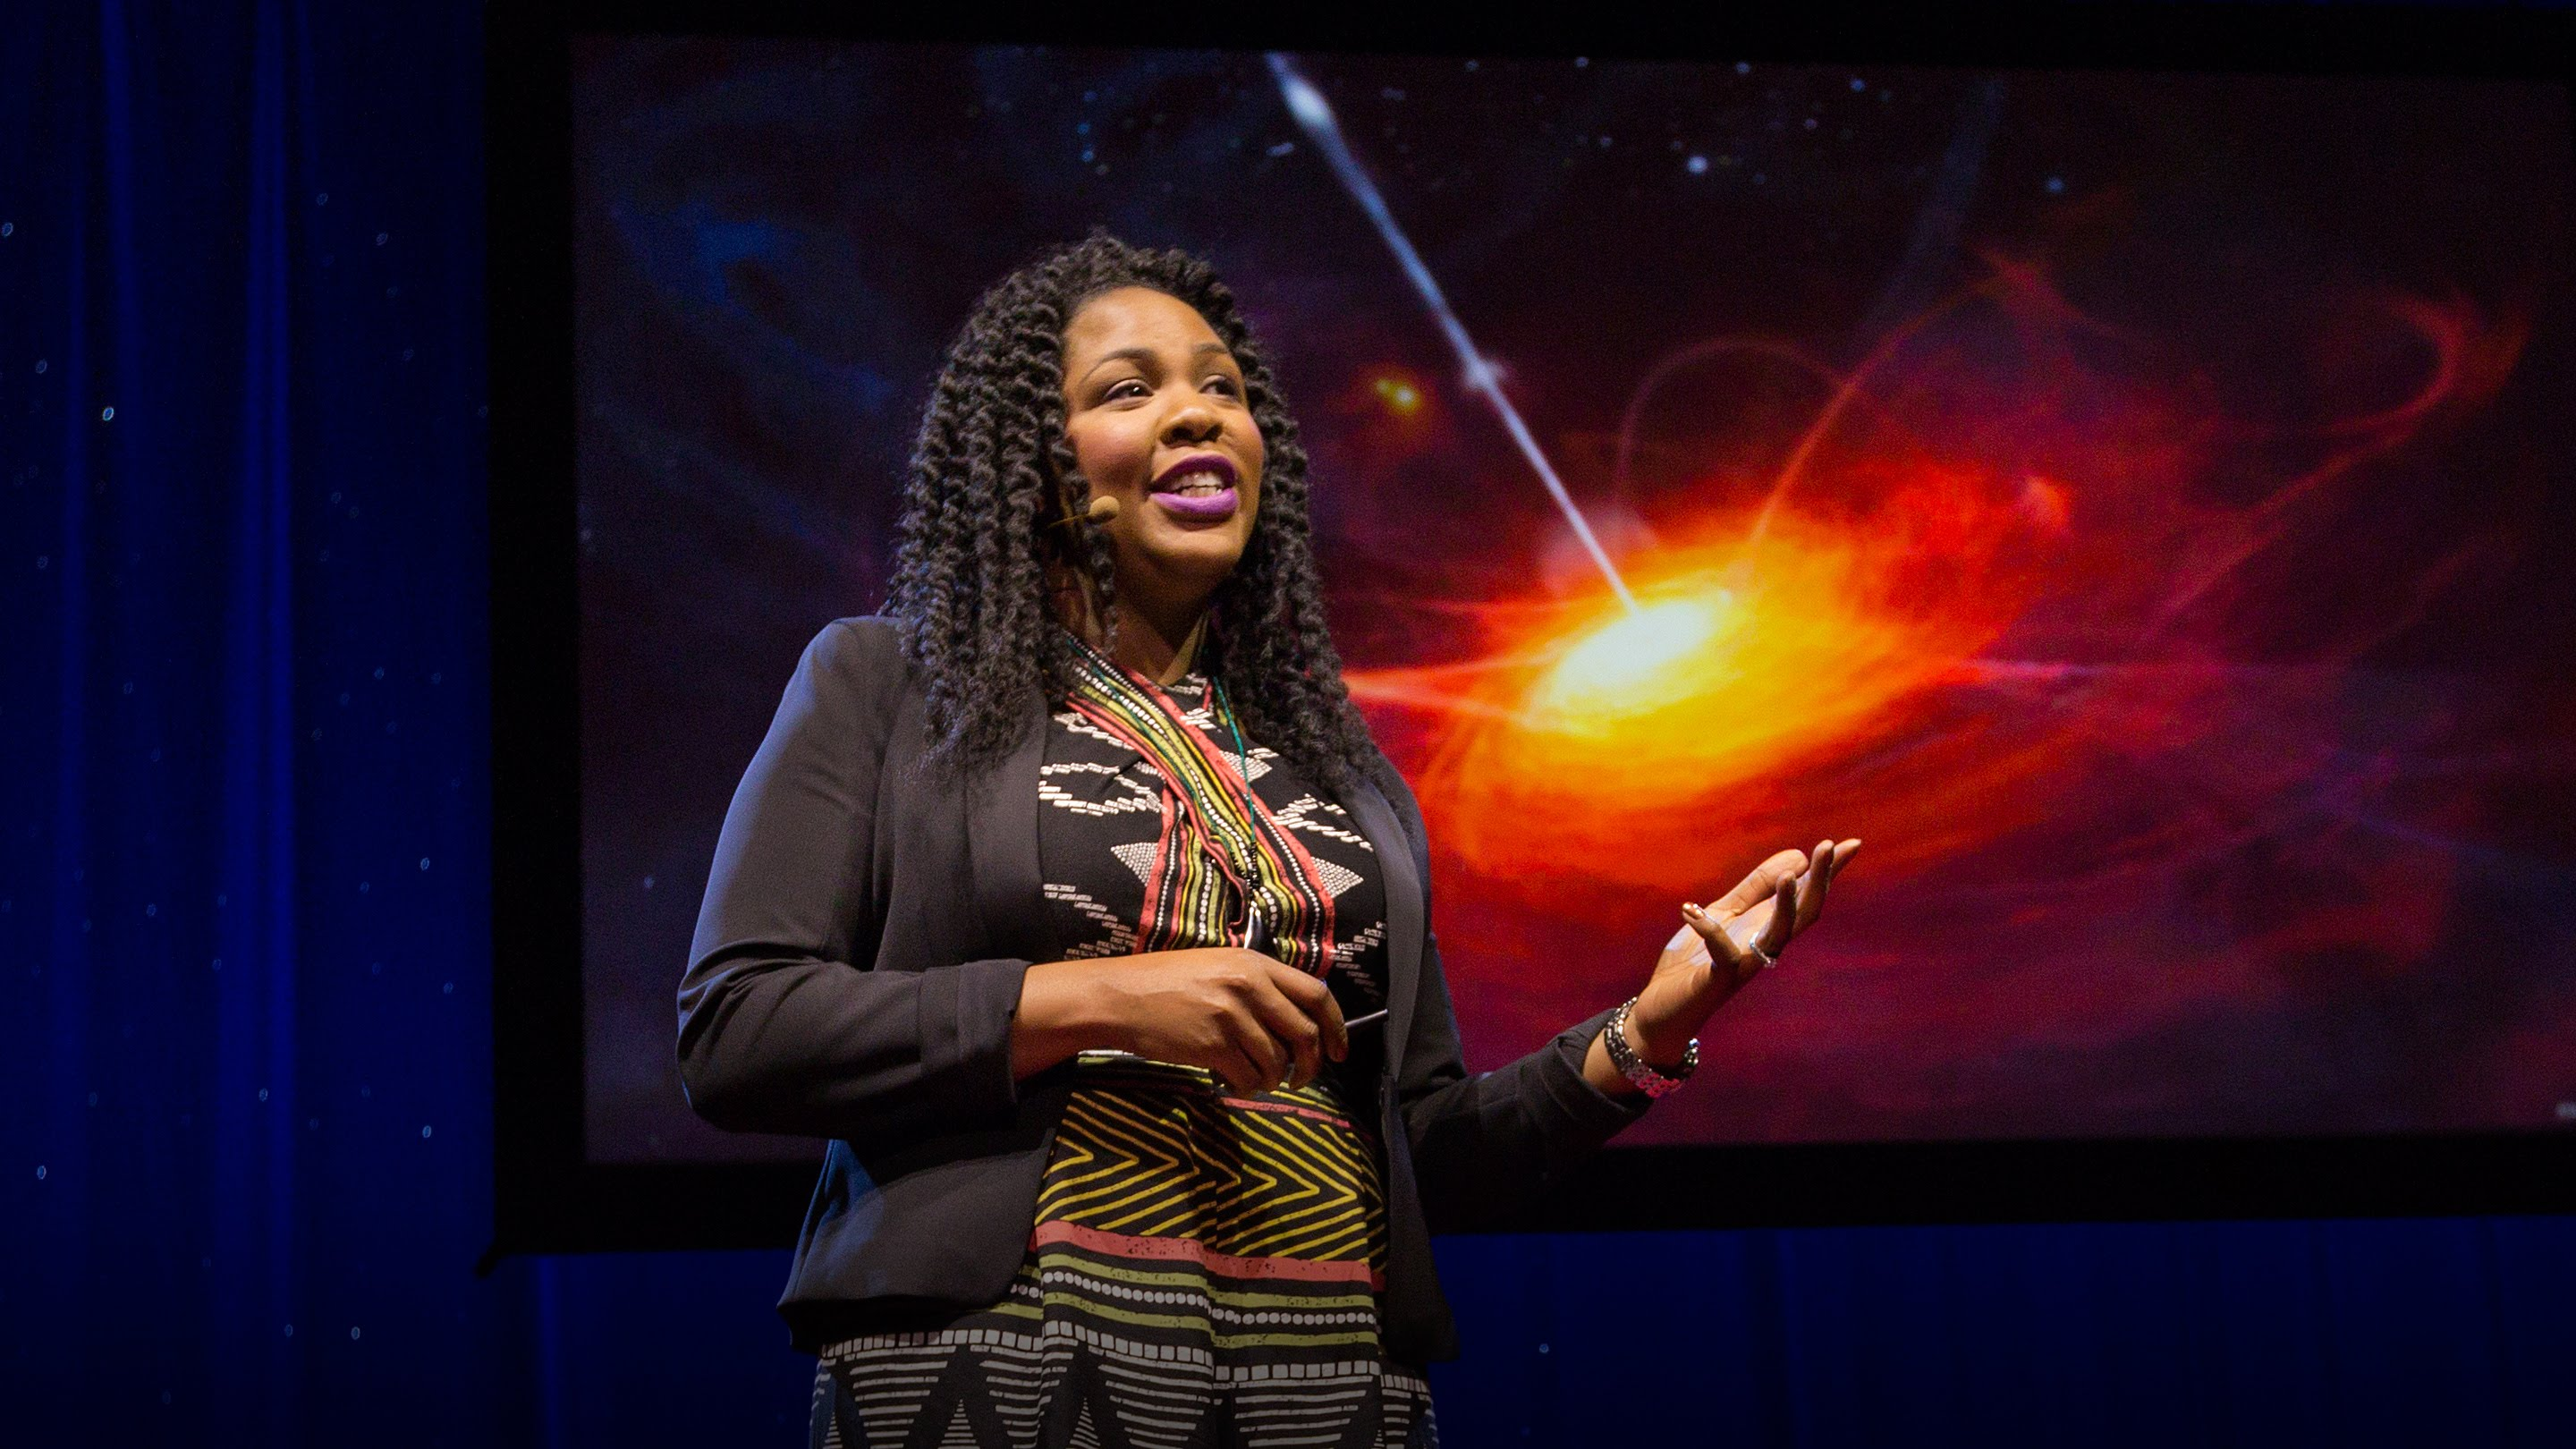 Meet Dr Jedidah Isler: The First Black Woman To Graduate From Yale with A PhD In Astrophysics